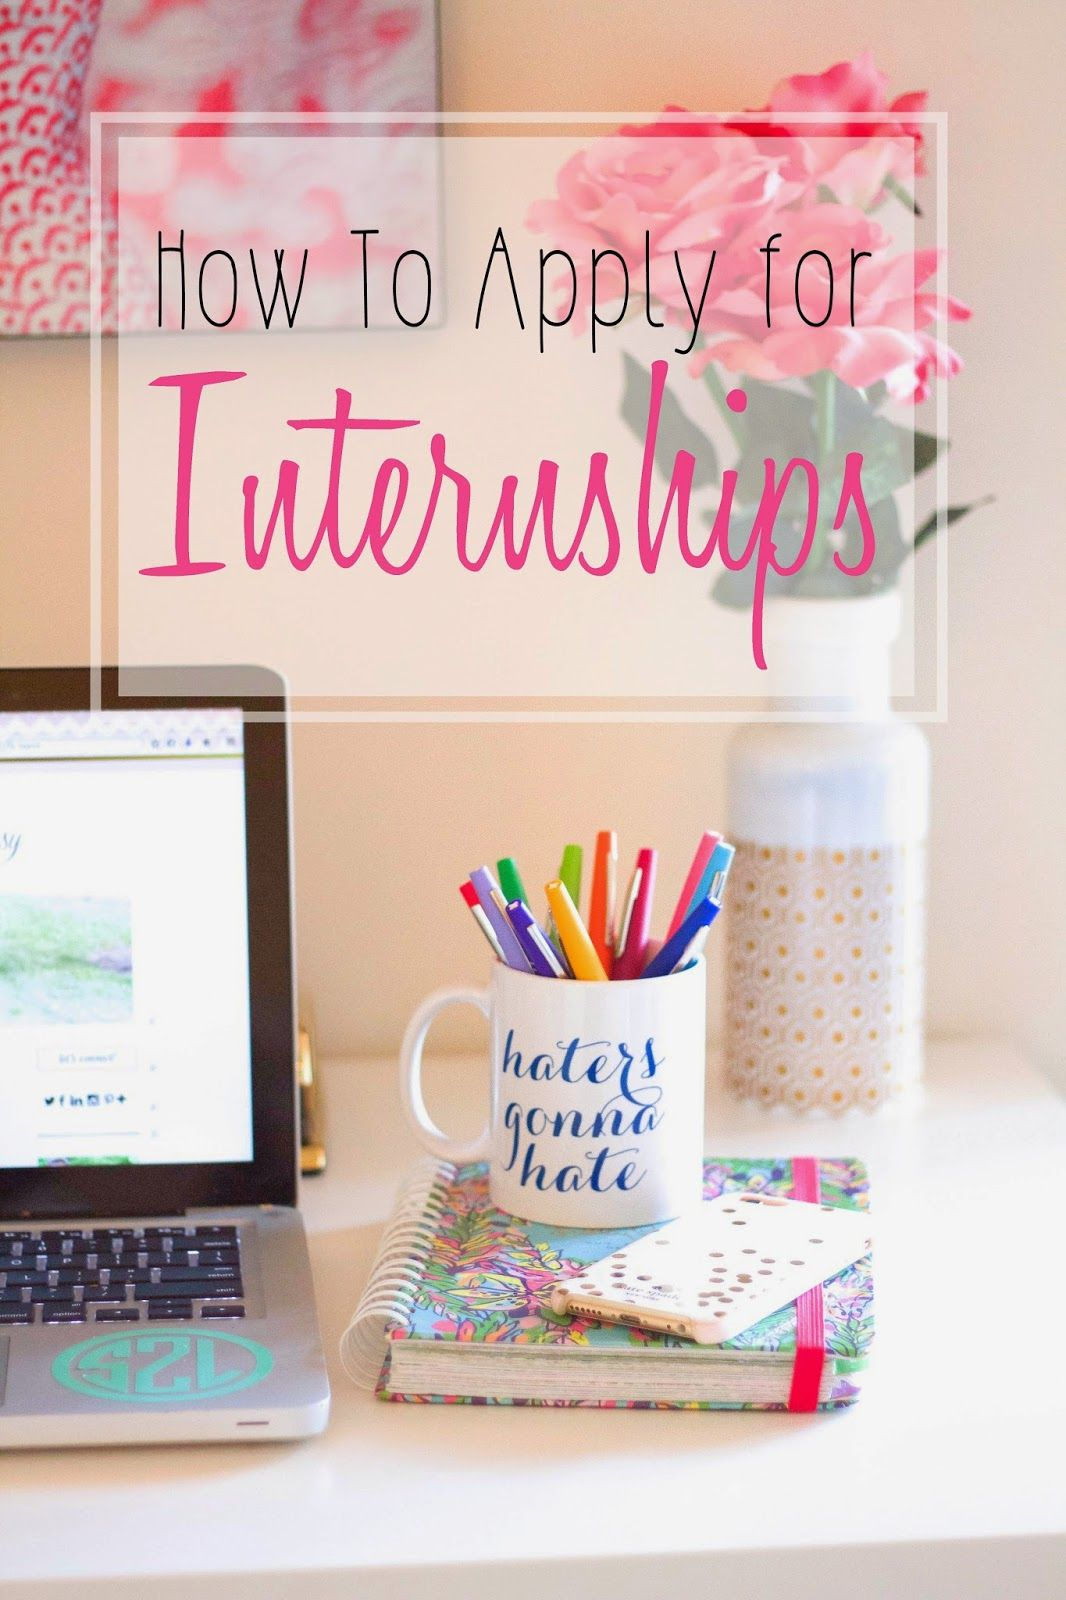 how to apply for internships how to get your dream internship how to apply for internships while in college getting on the job experience is a great resume builder for students internships help you see if this